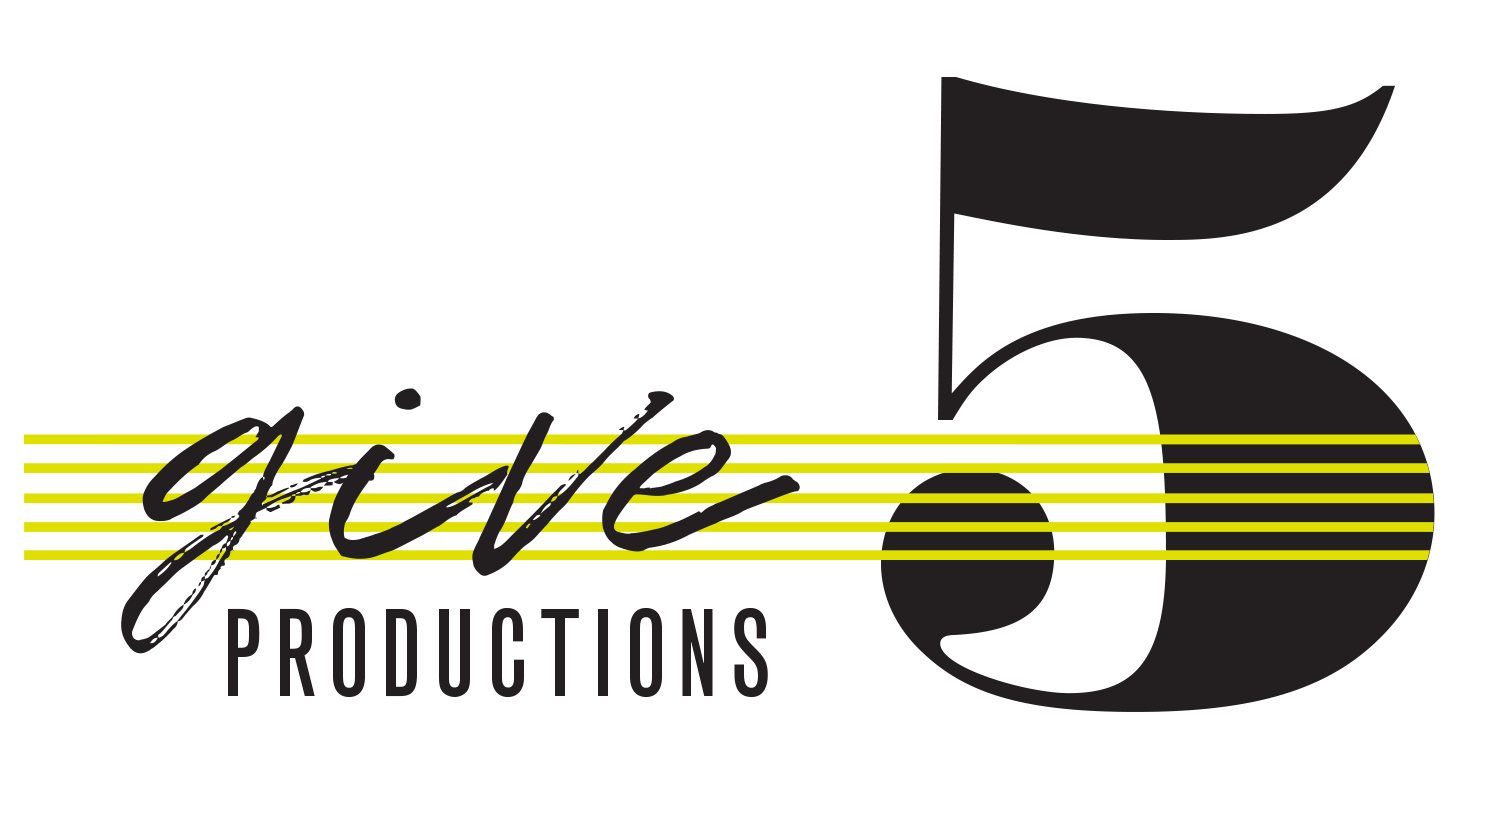 Give 5 Productions